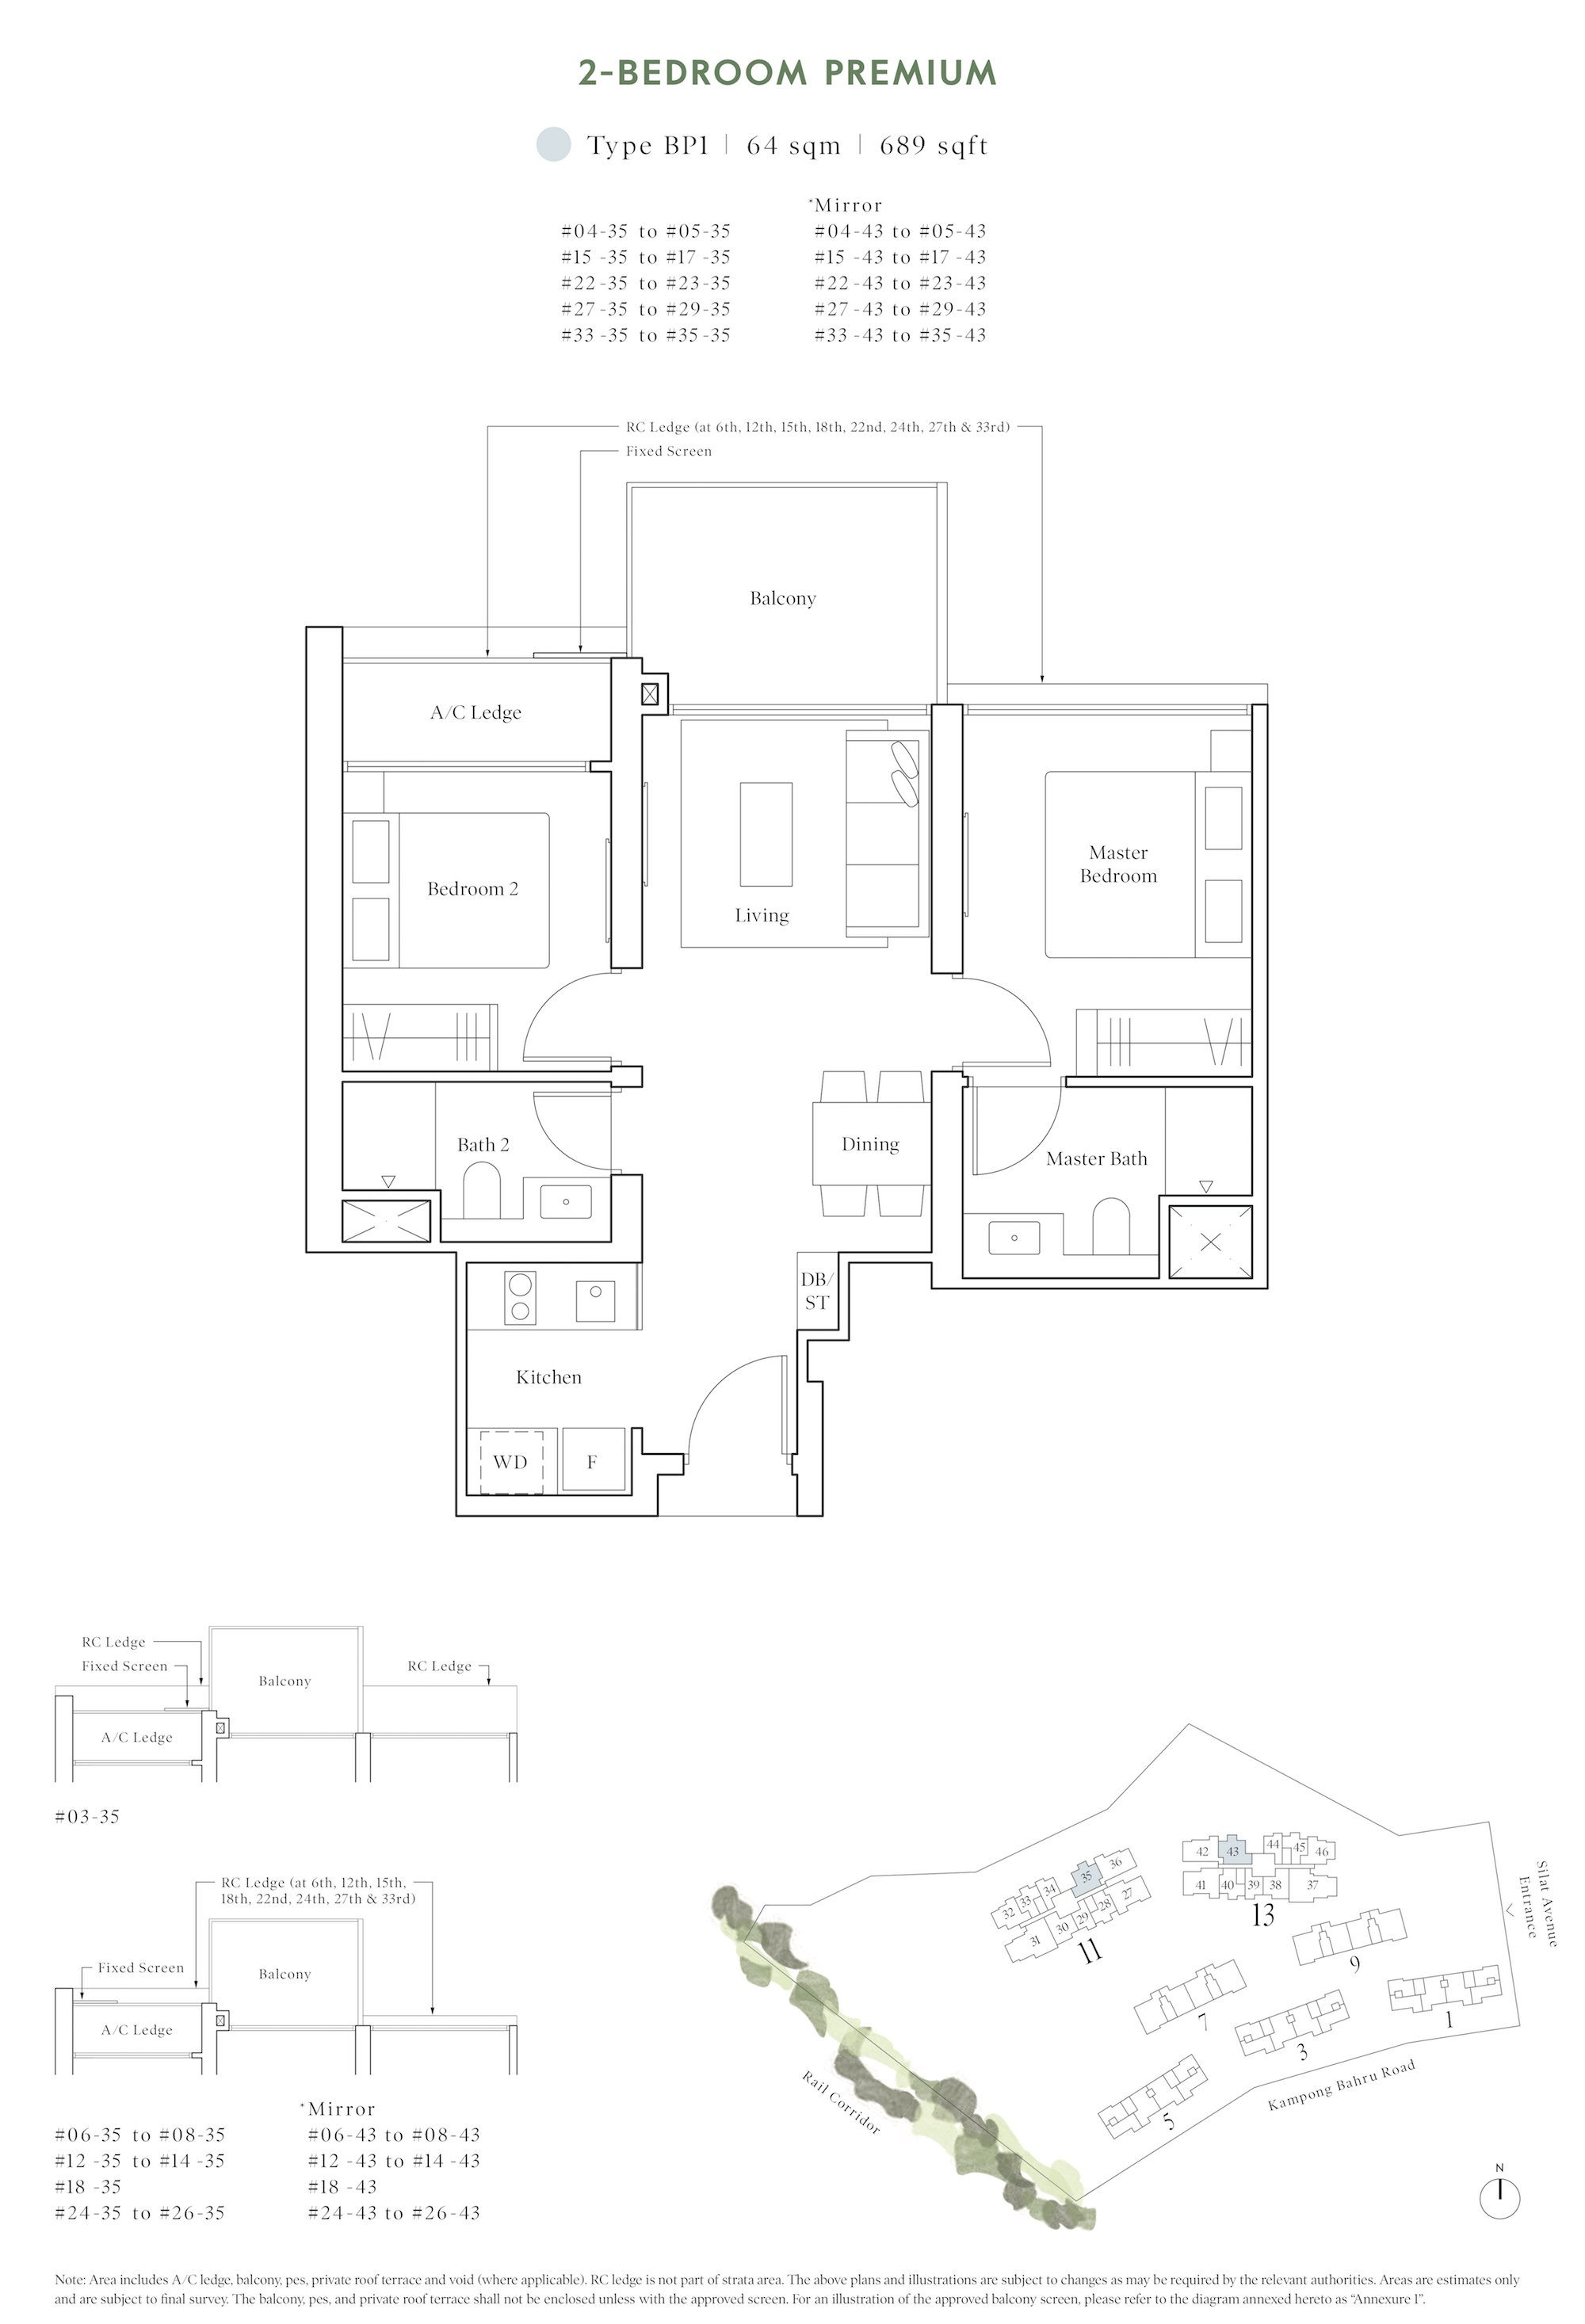 Avenue South Residence 南峰雅苑 horizon floor plan 2-bedroom bp1